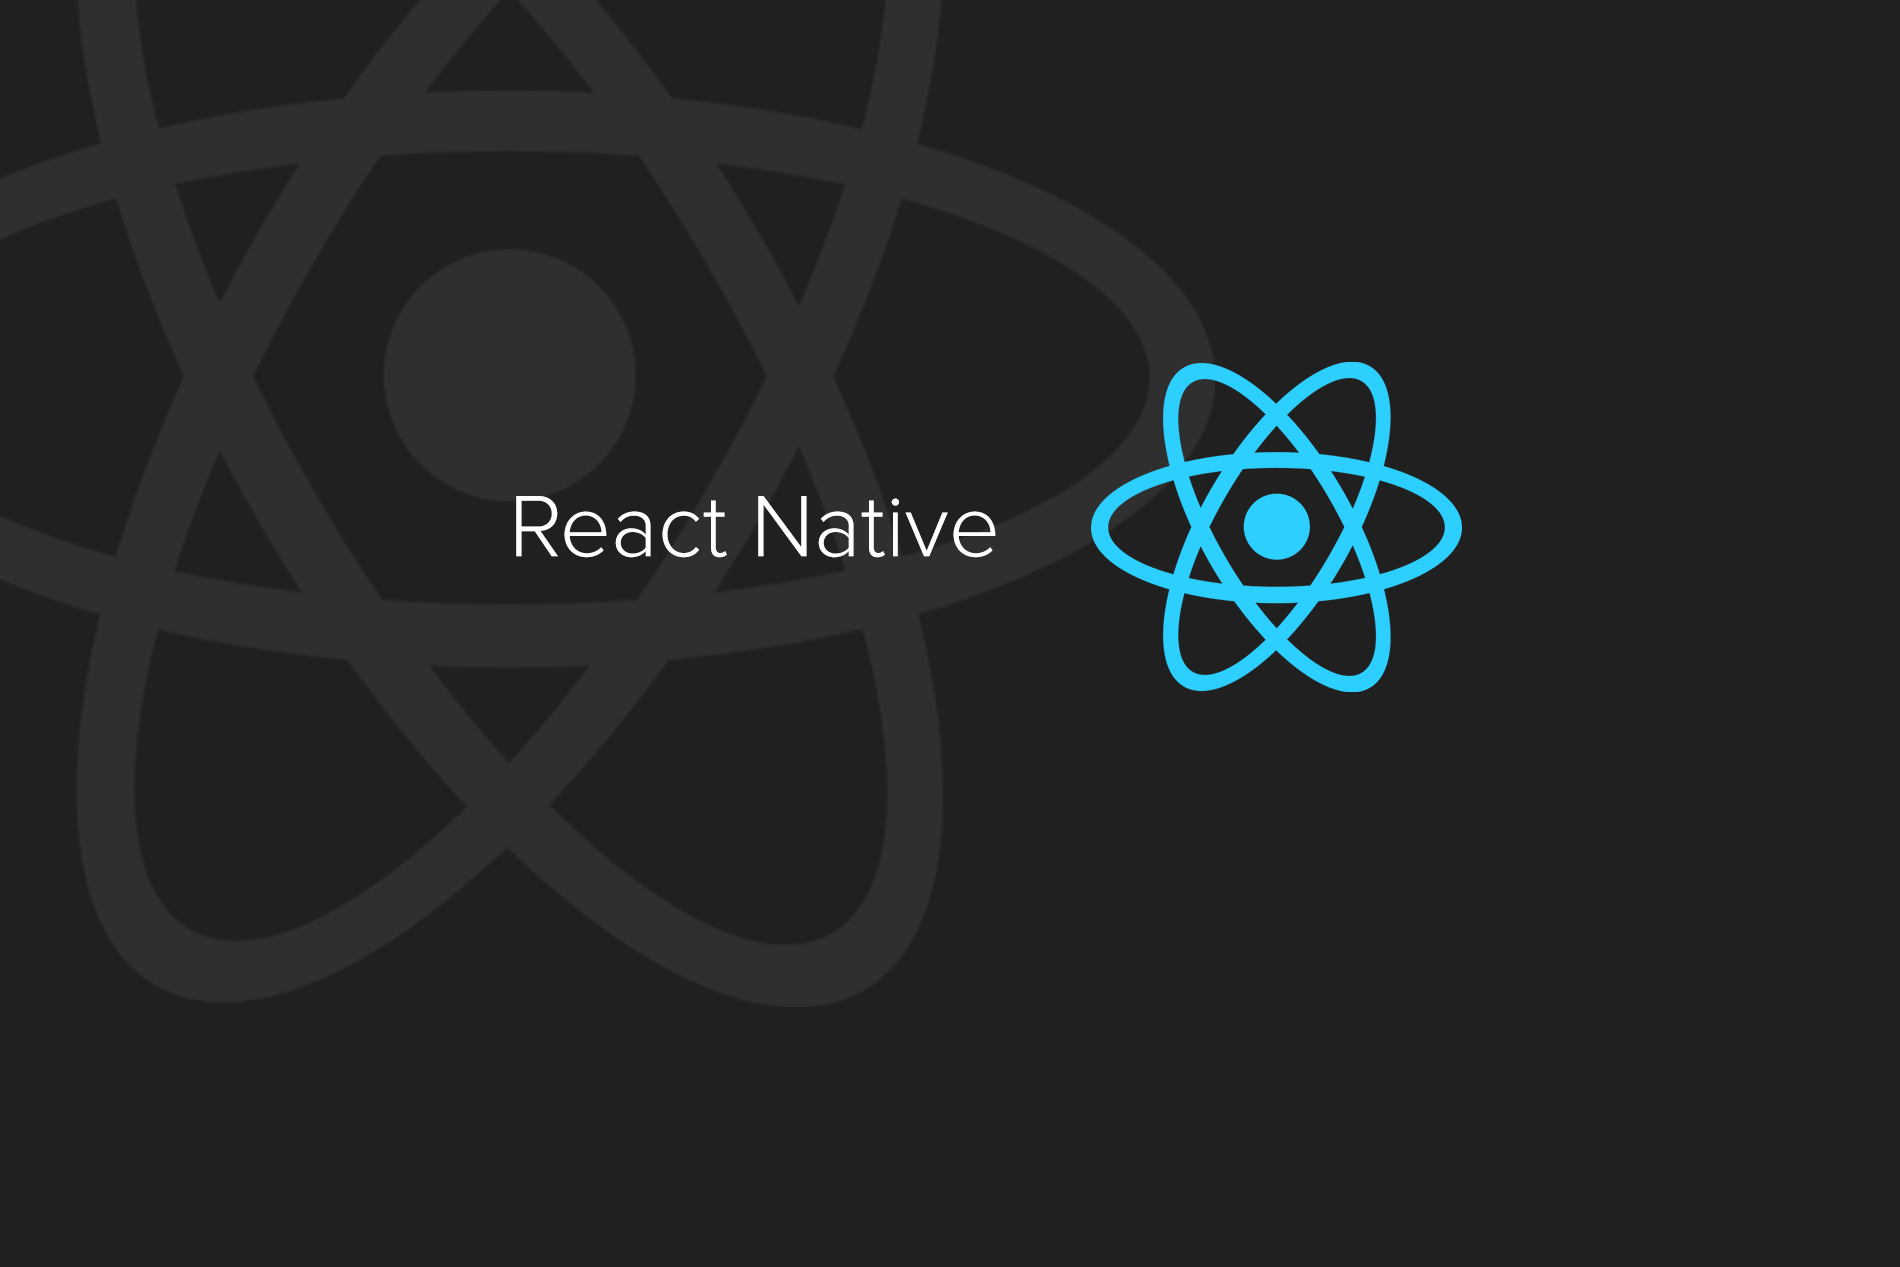 react-native 0 31 0 image not loaded or displayed · Issue